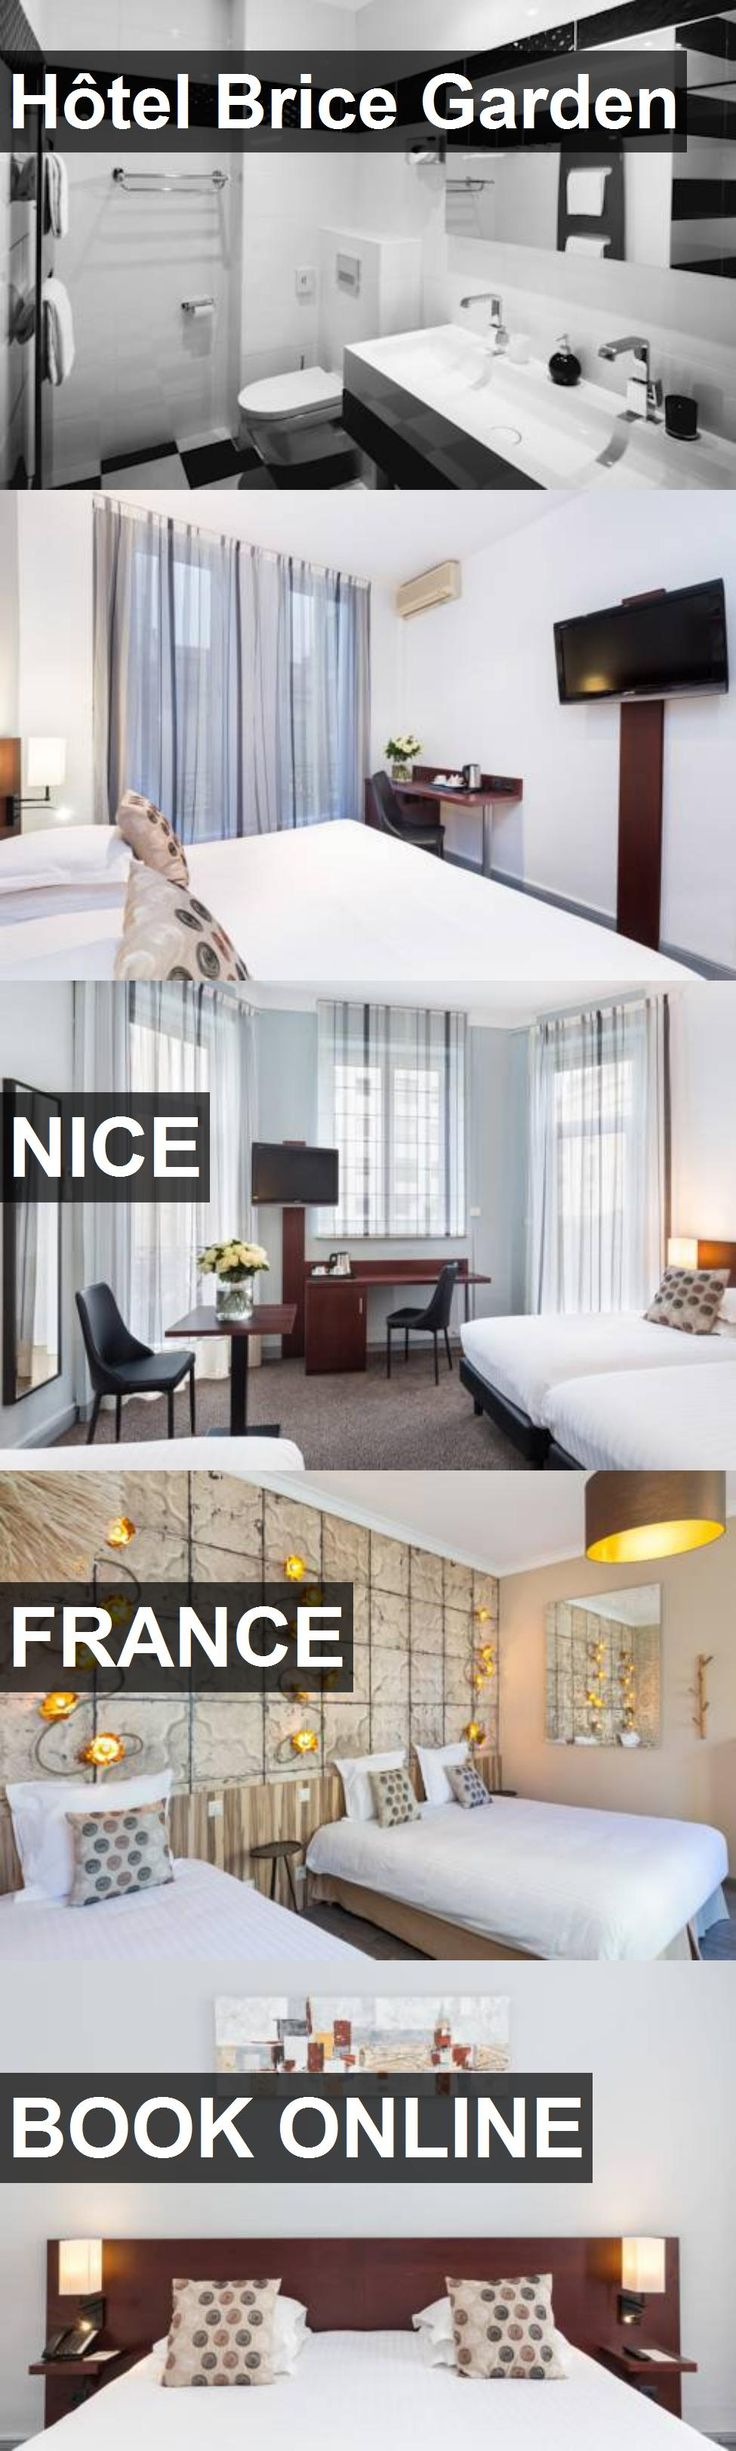 Hotel Hôtel Brice Garden in Nice, France. For more information, photos, reviews and best prices please follow the link. #France #Nice #travel #vacation #hotel